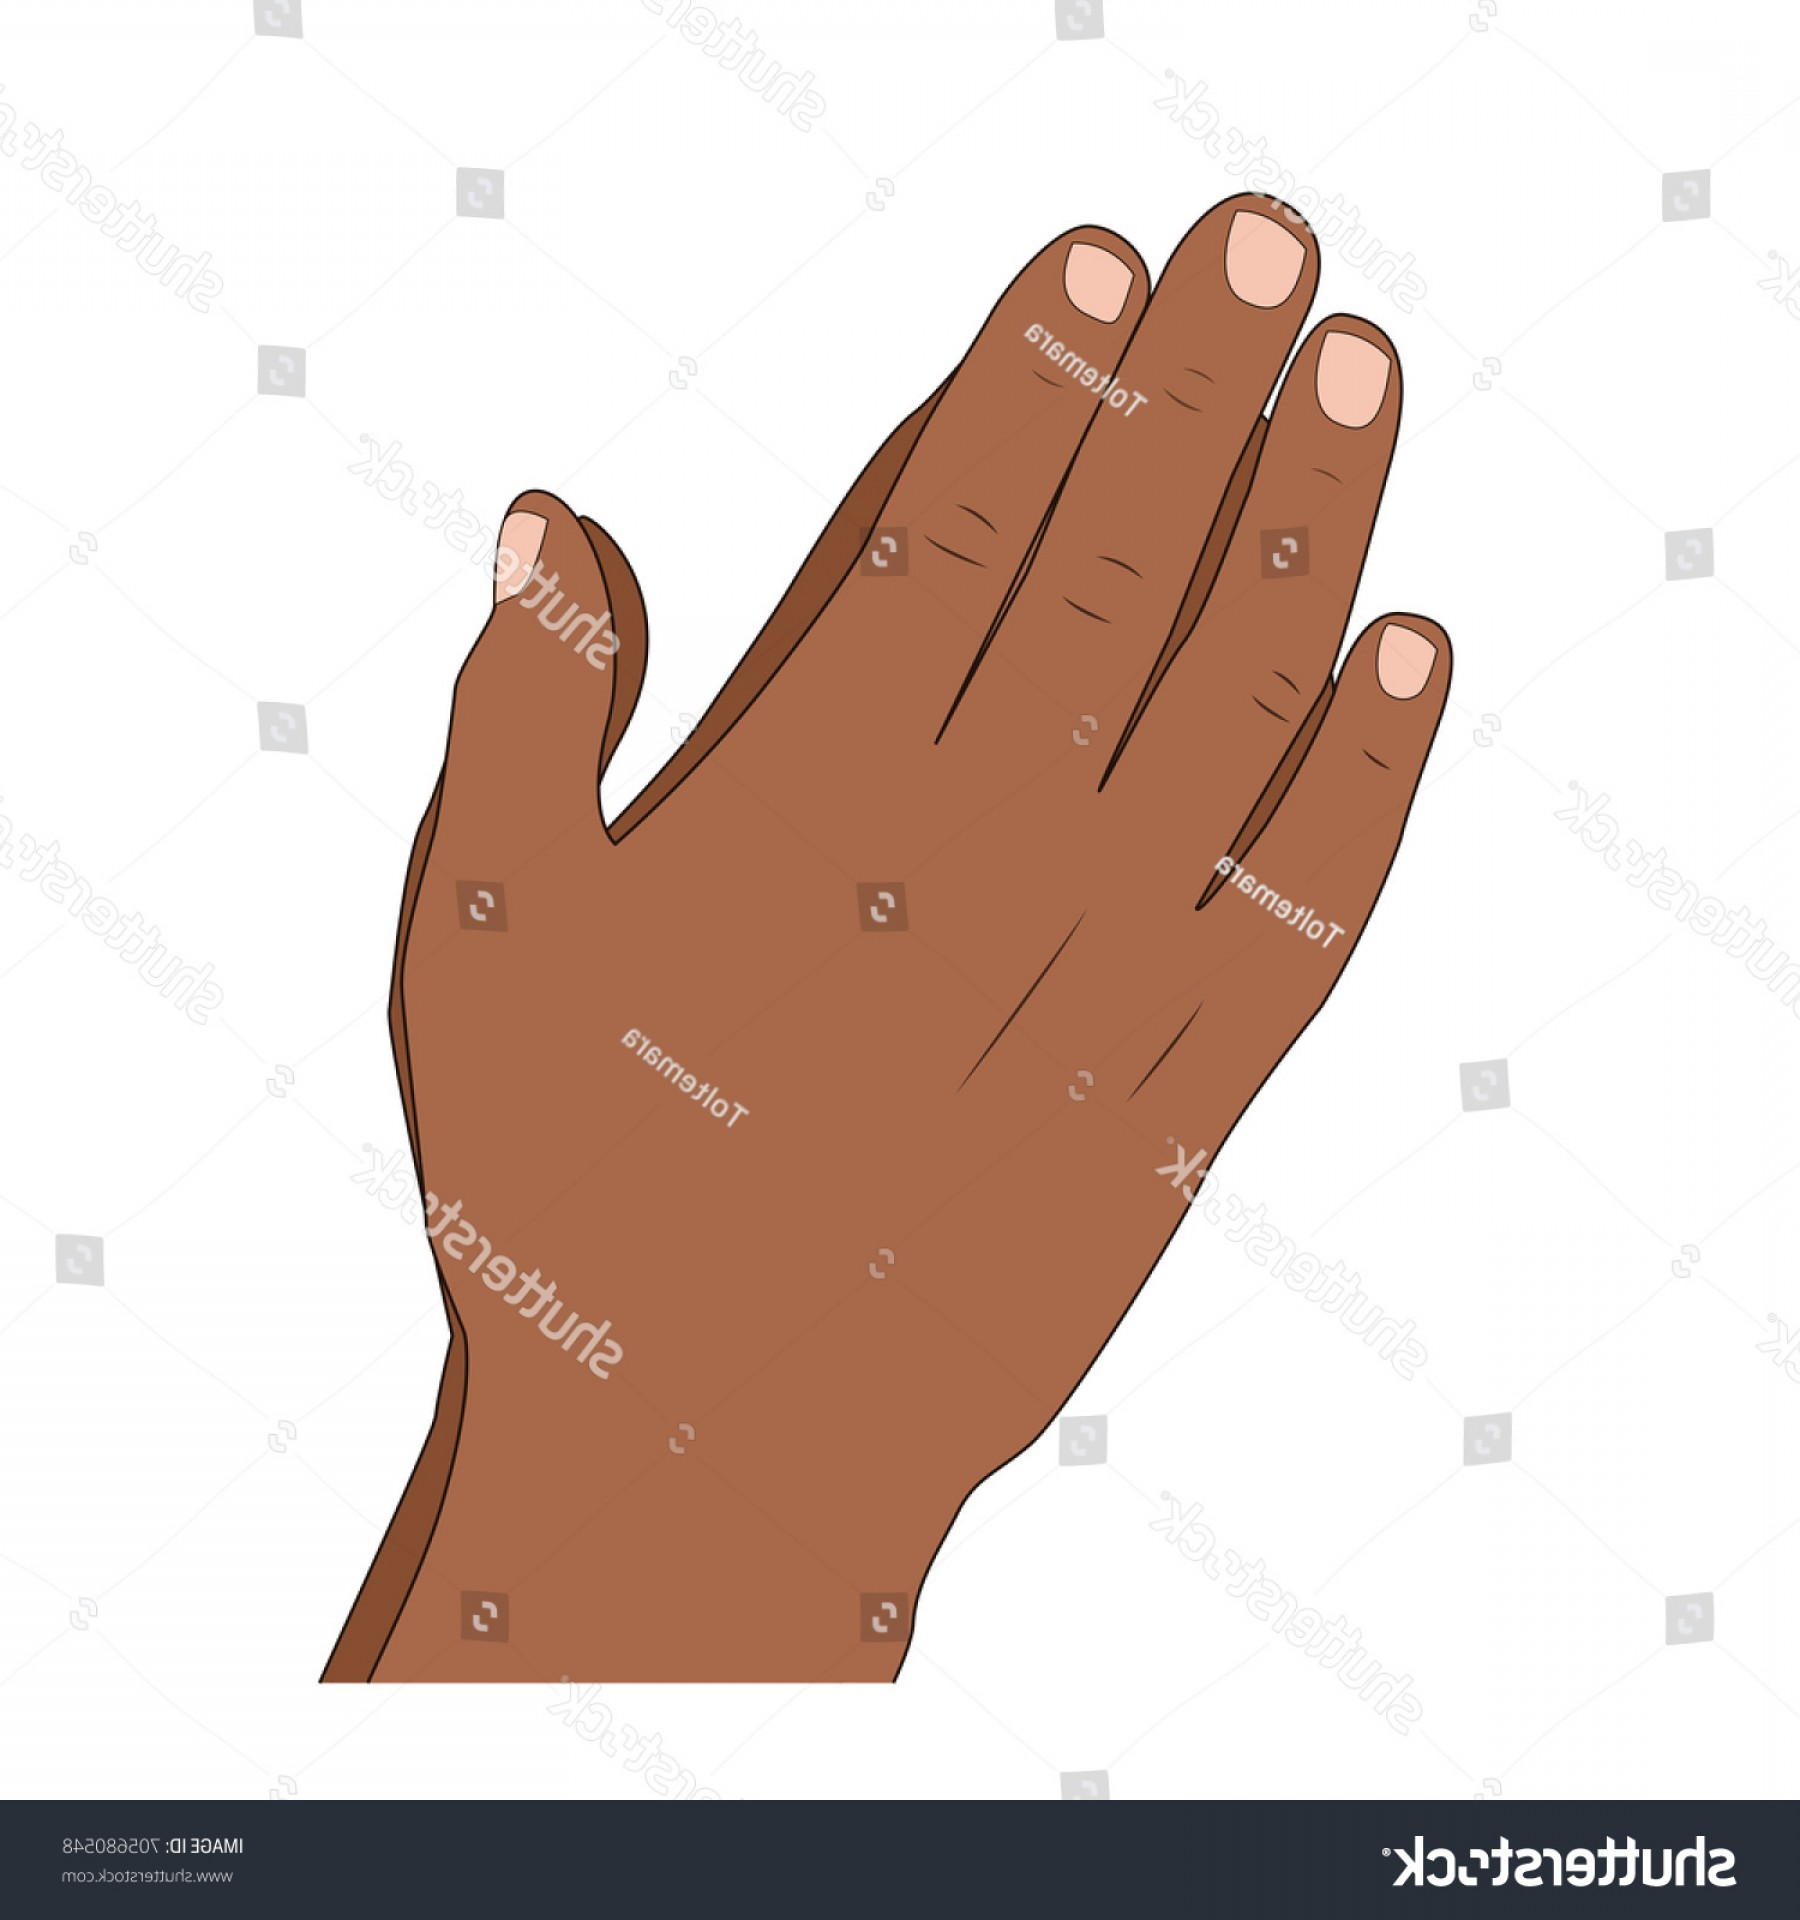 Praying Hands Vectors Shutterstock: Isolated Praying Hands Gesture Palms Together